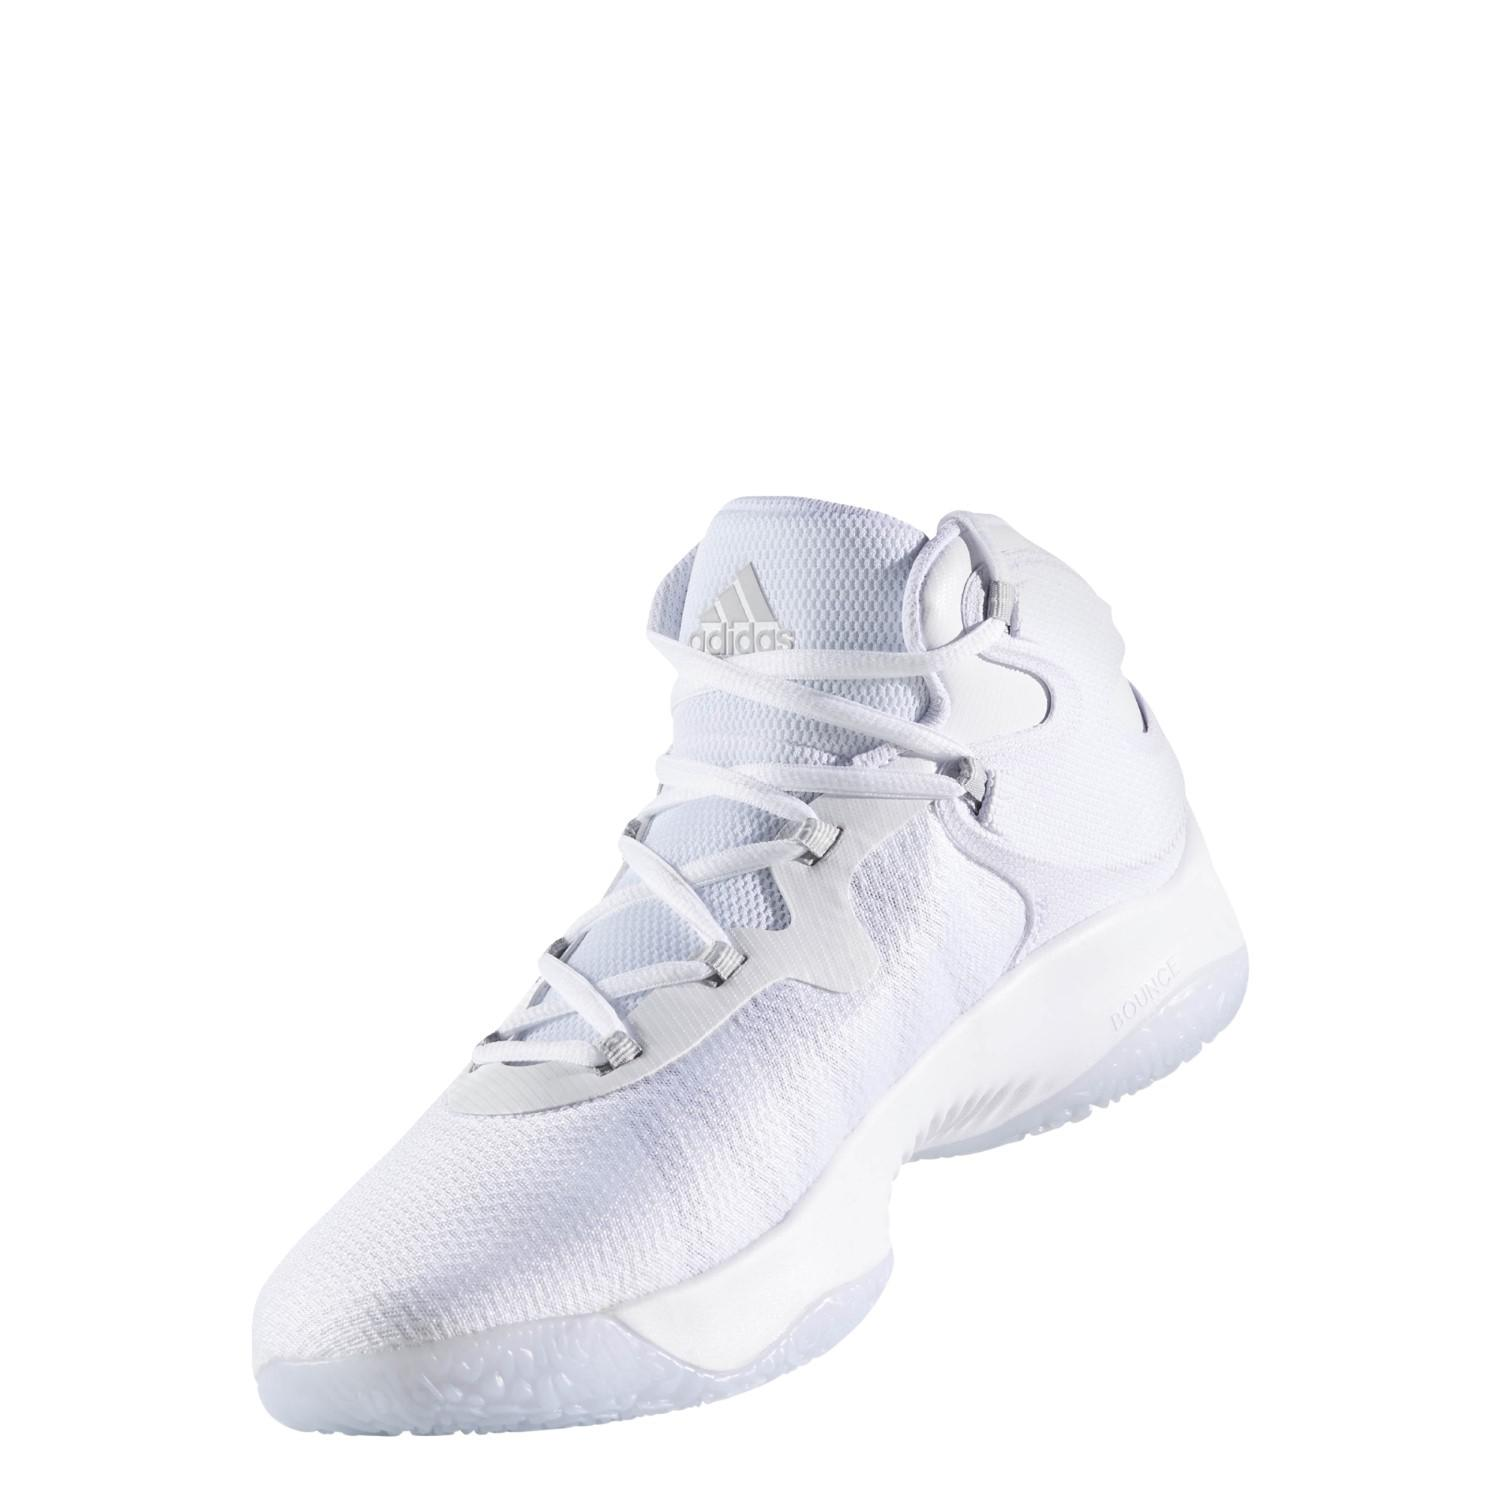 d4896cedf Lyst - adidas Explosive Bounce Basketball Shoe in White for Men